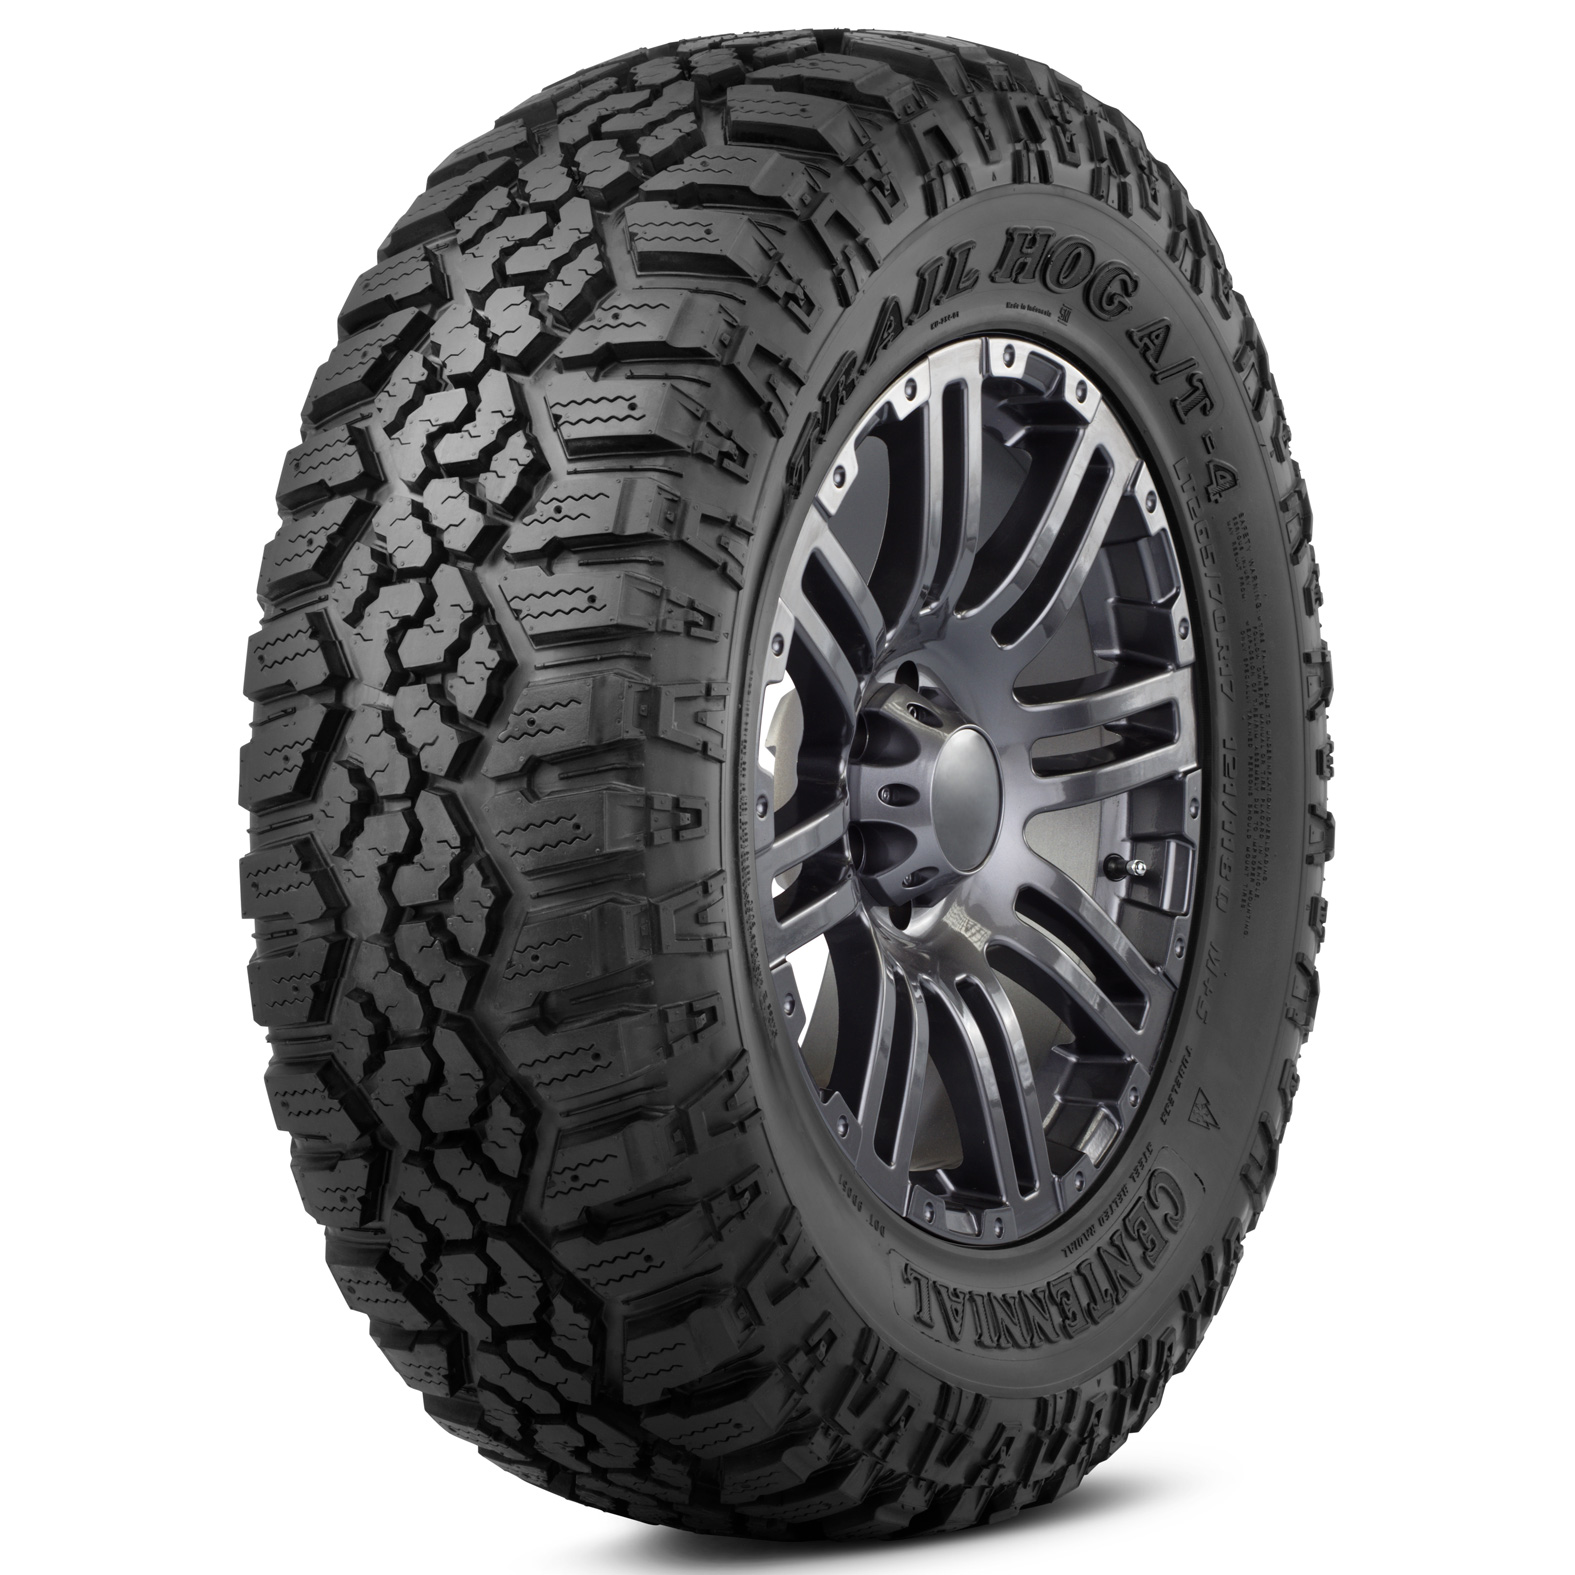 Centennial Trail Hog AT-4 tire - angle